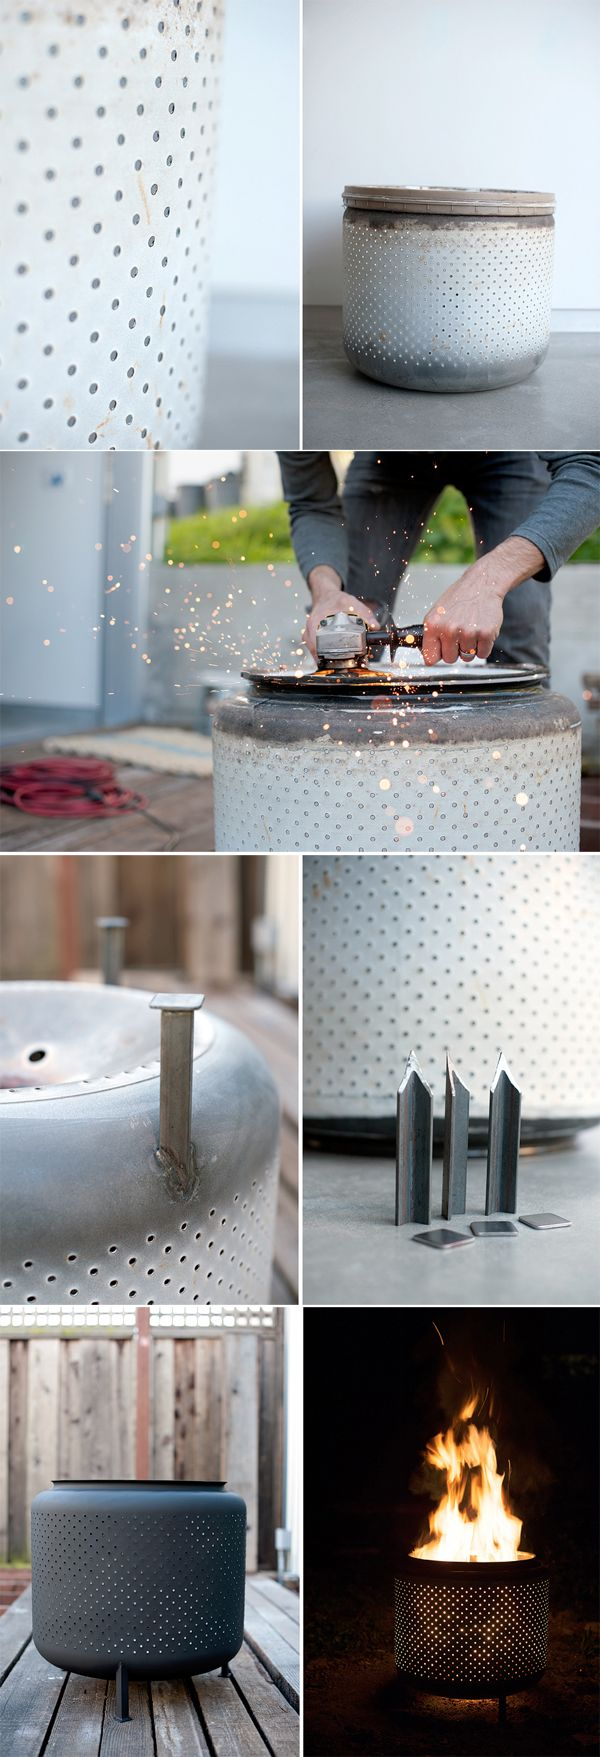 best 25 propane tank for grill ideas on pinterest propane tanks